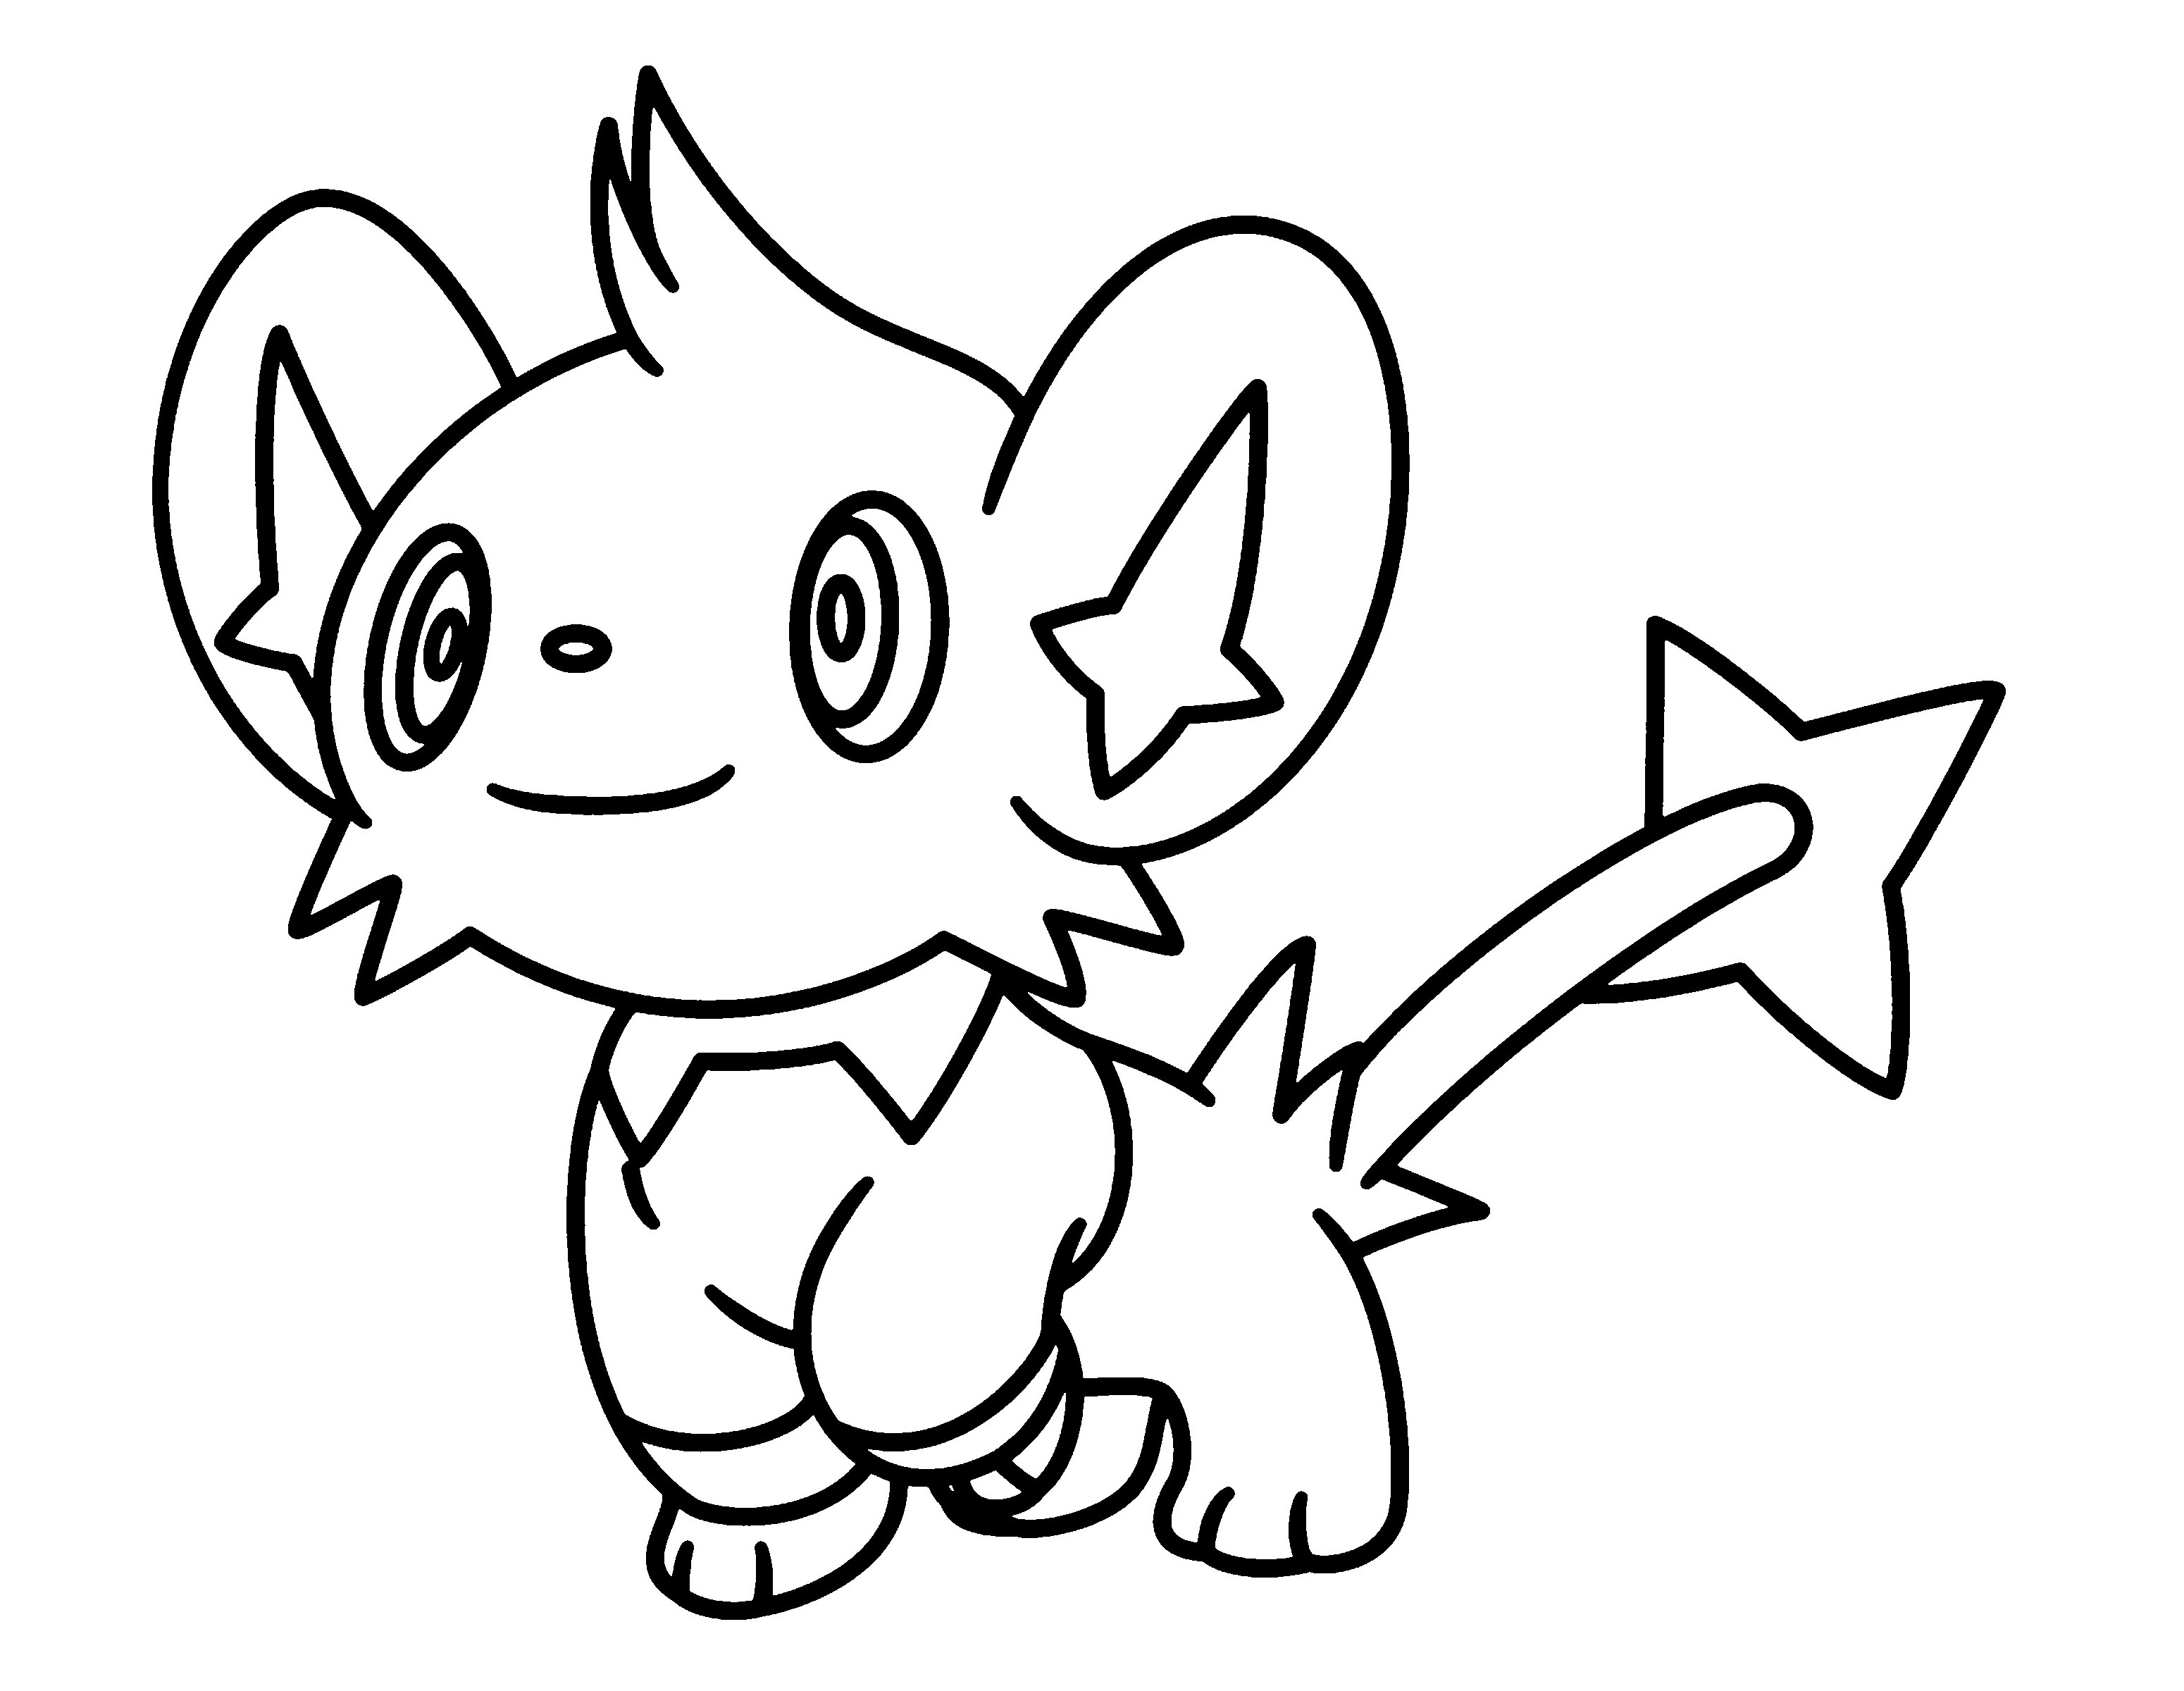 3100x2400 Coloring Pages Draw Easy Pokemon Unique Printable Pokemon Coloring